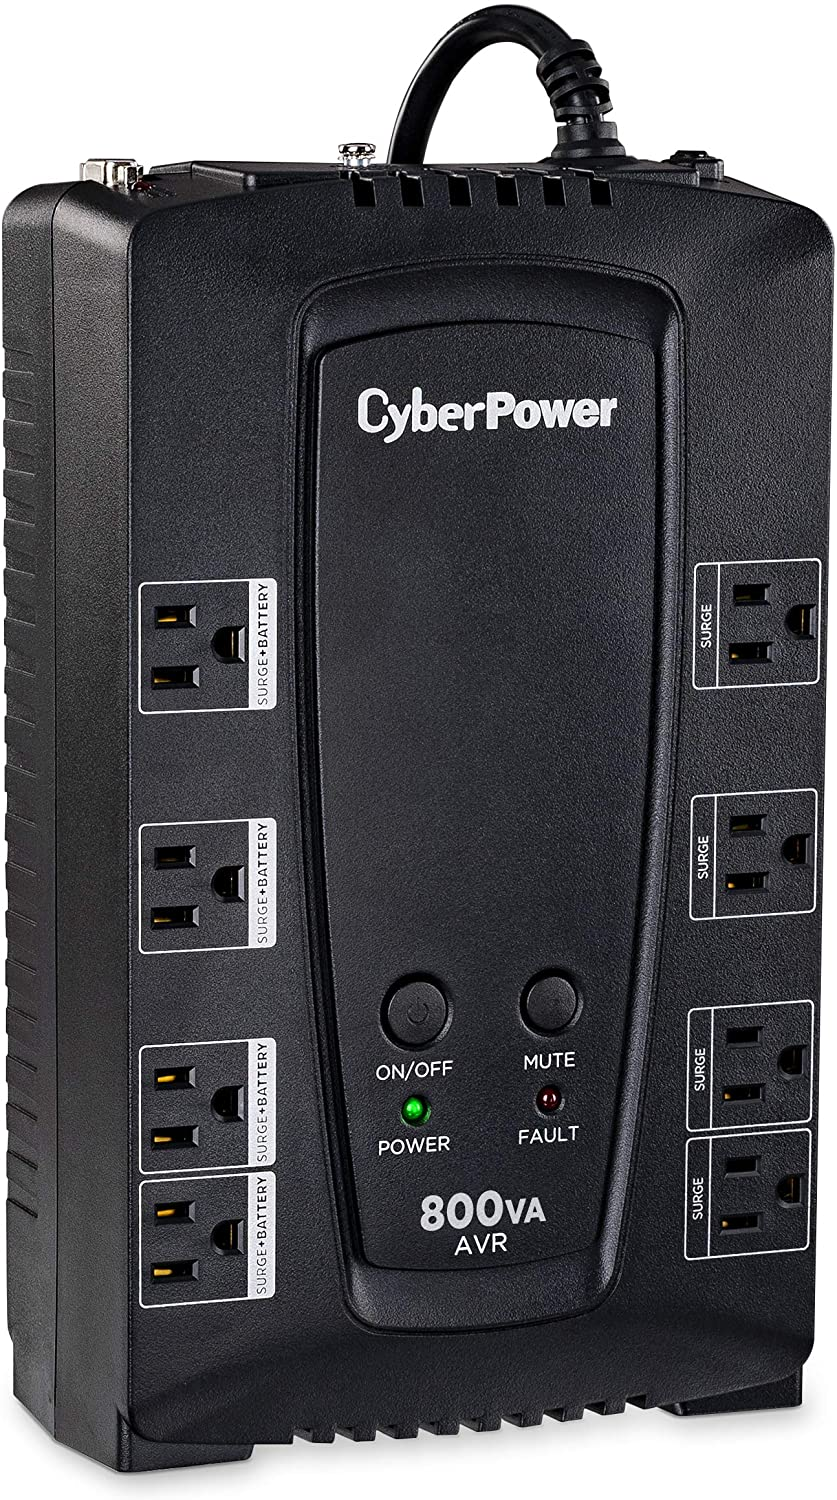 CyberPower CP800AVR AVR UPS System, 800VA/450W, 8 Outlets, Compact